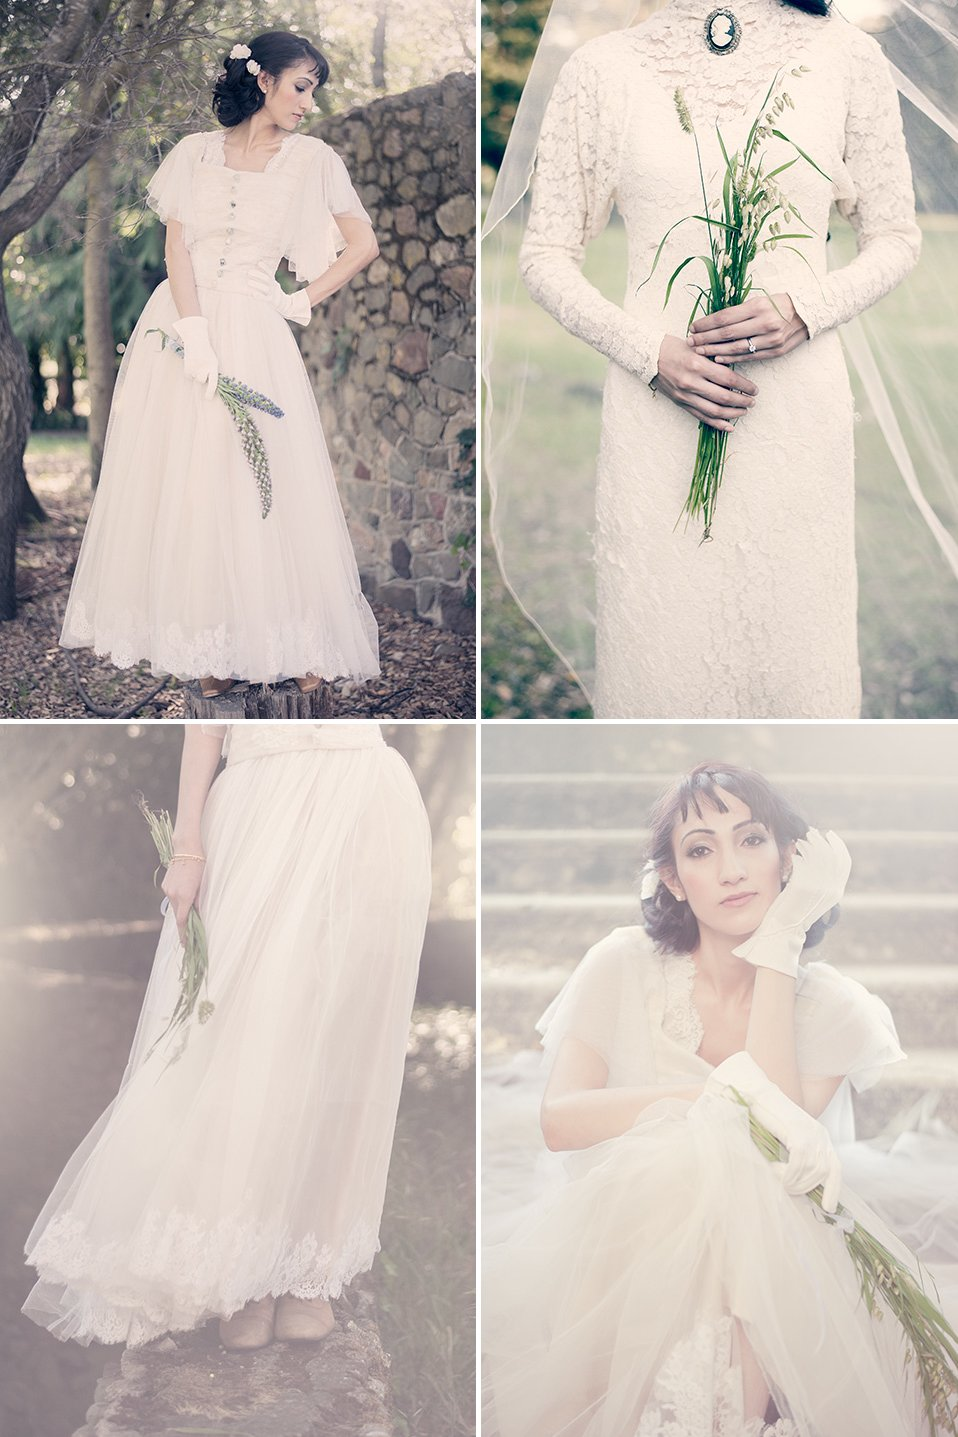 Romantic-wedding-inspiration-vintage-inspired-bridal-style.full